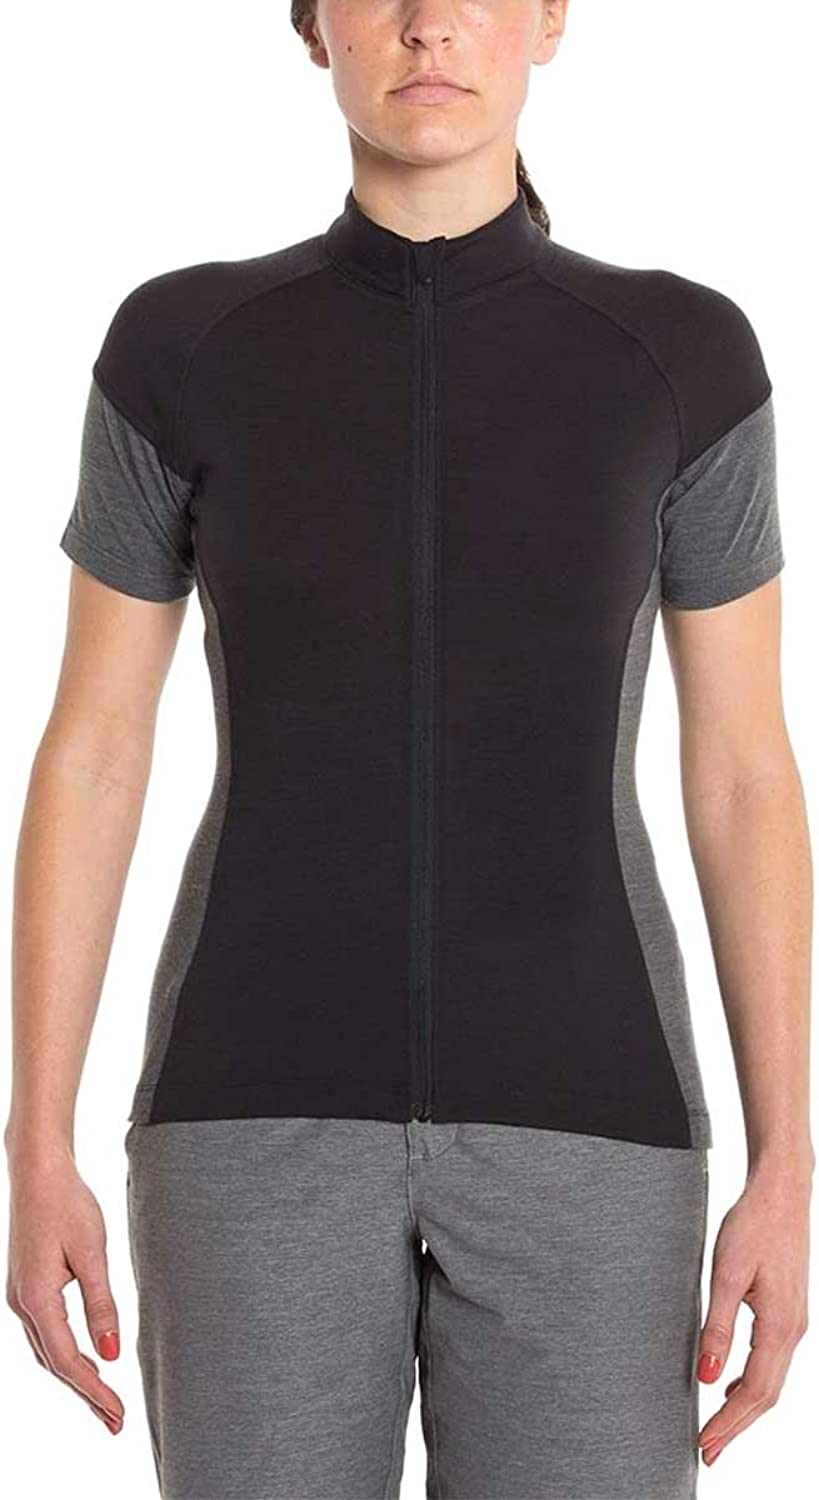 Giro Ride Jersey  Women's